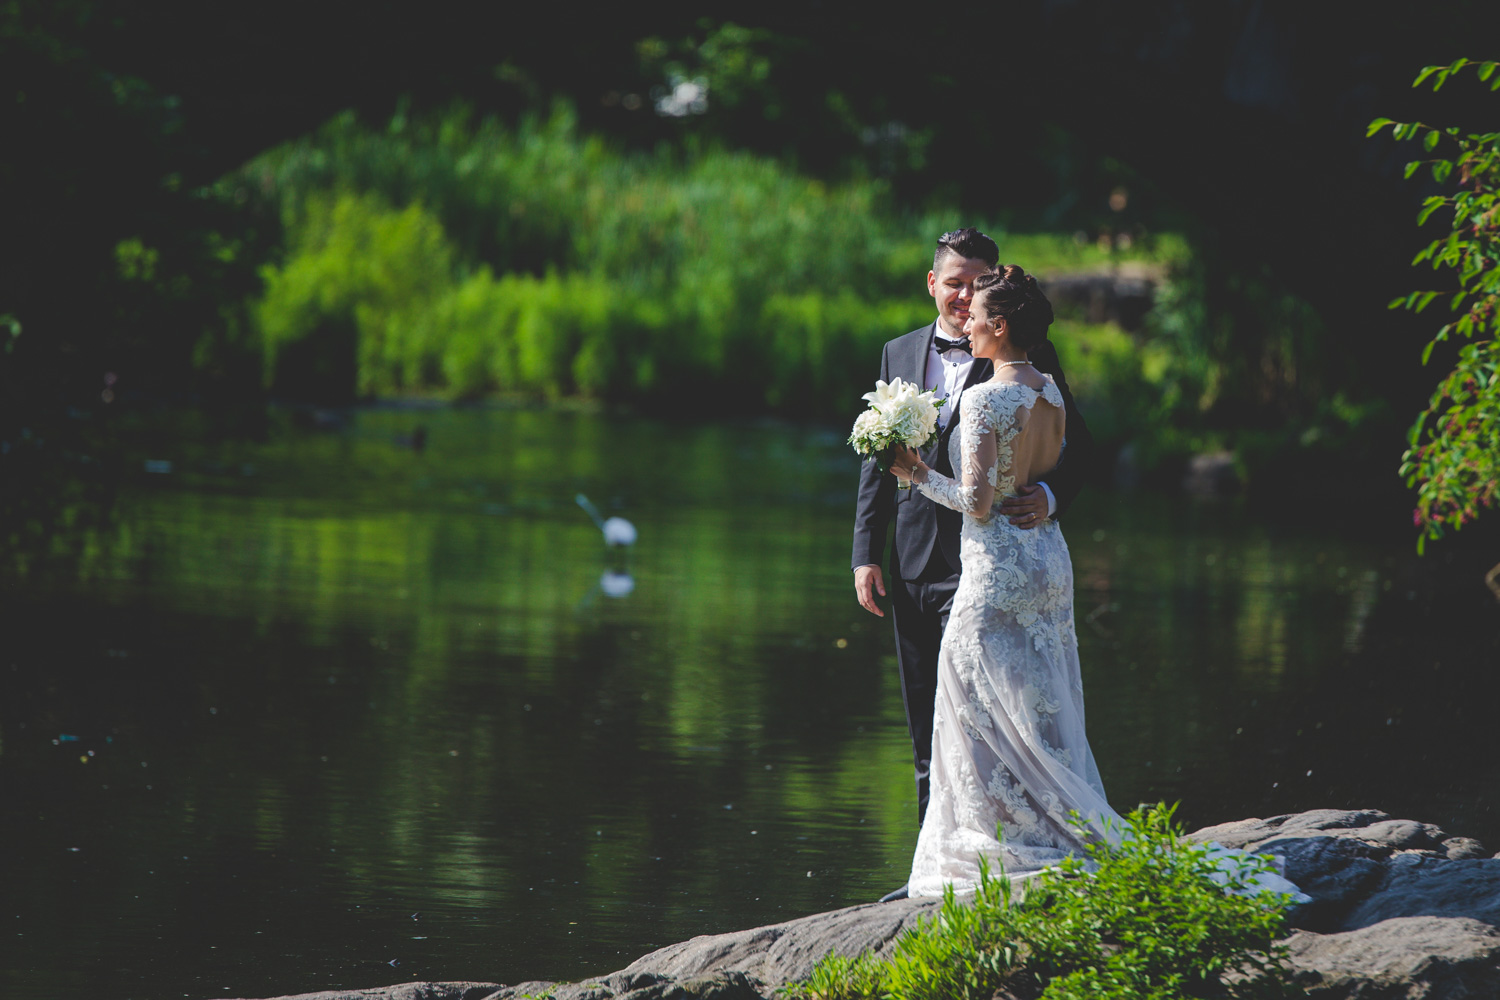 Wedding-photography-nyc-amazing-best-9.jpg